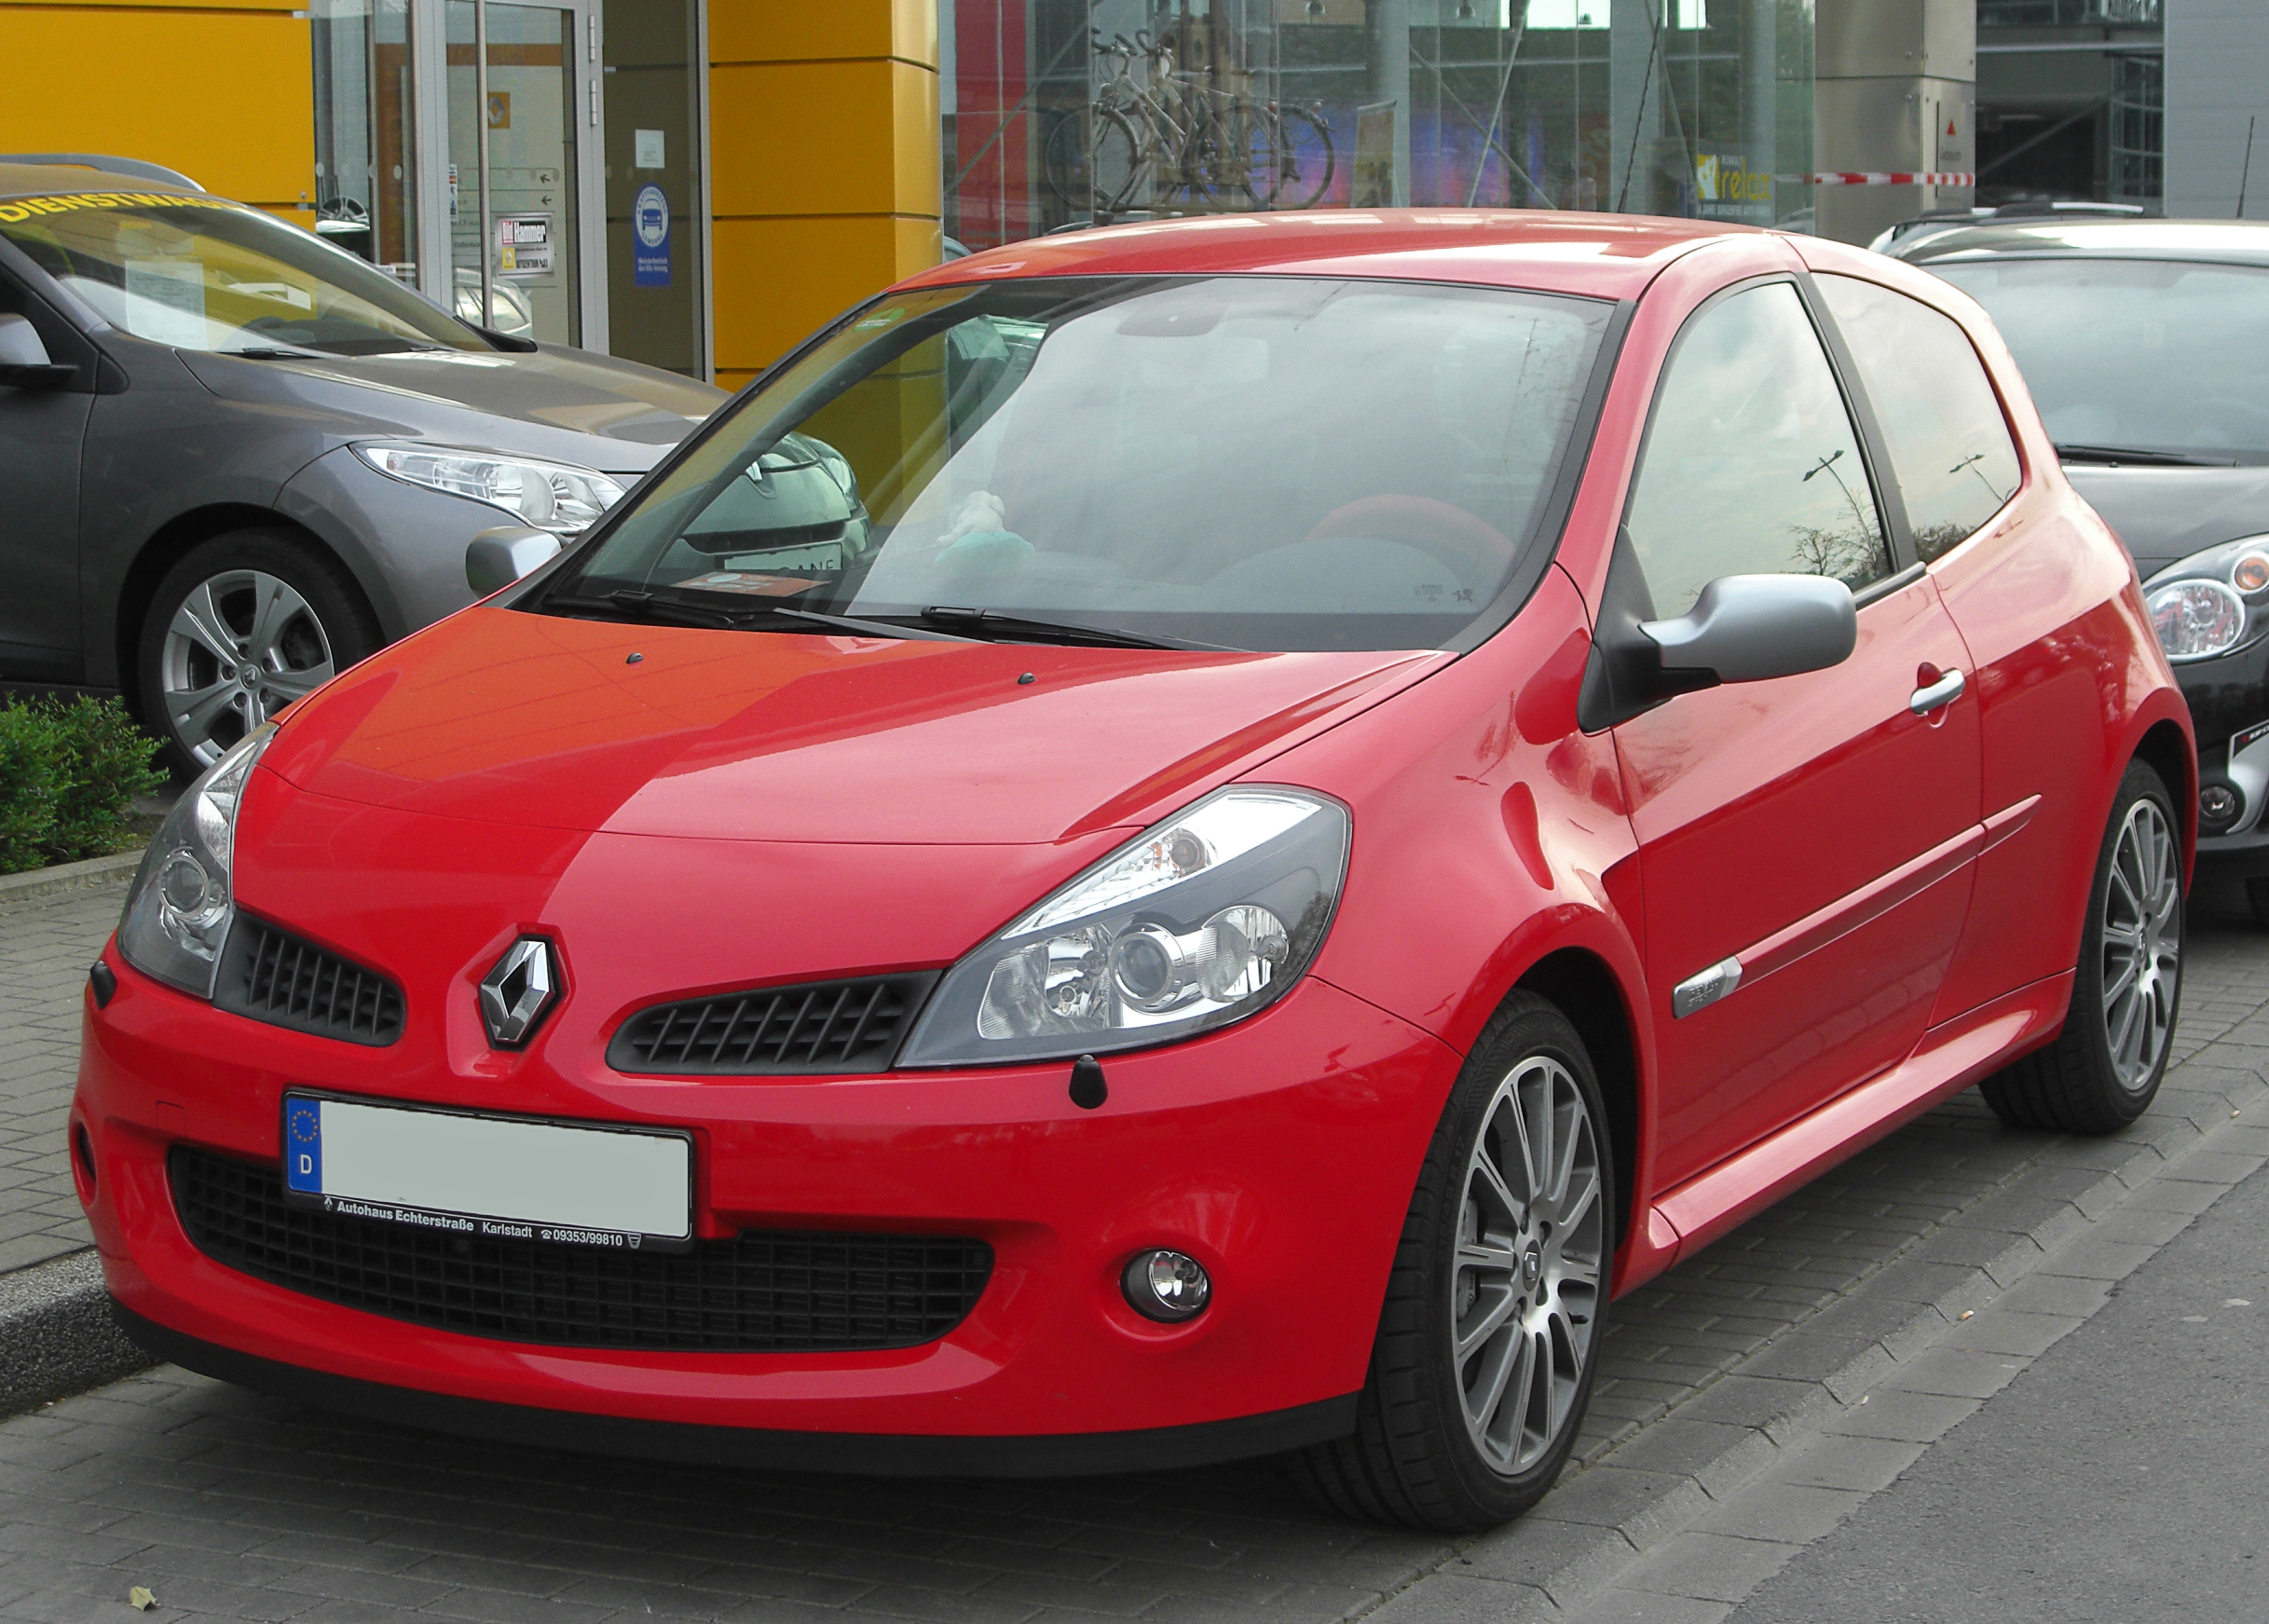 2006 renault clio iii pictures information and specs. Black Bedroom Furniture Sets. Home Design Ideas